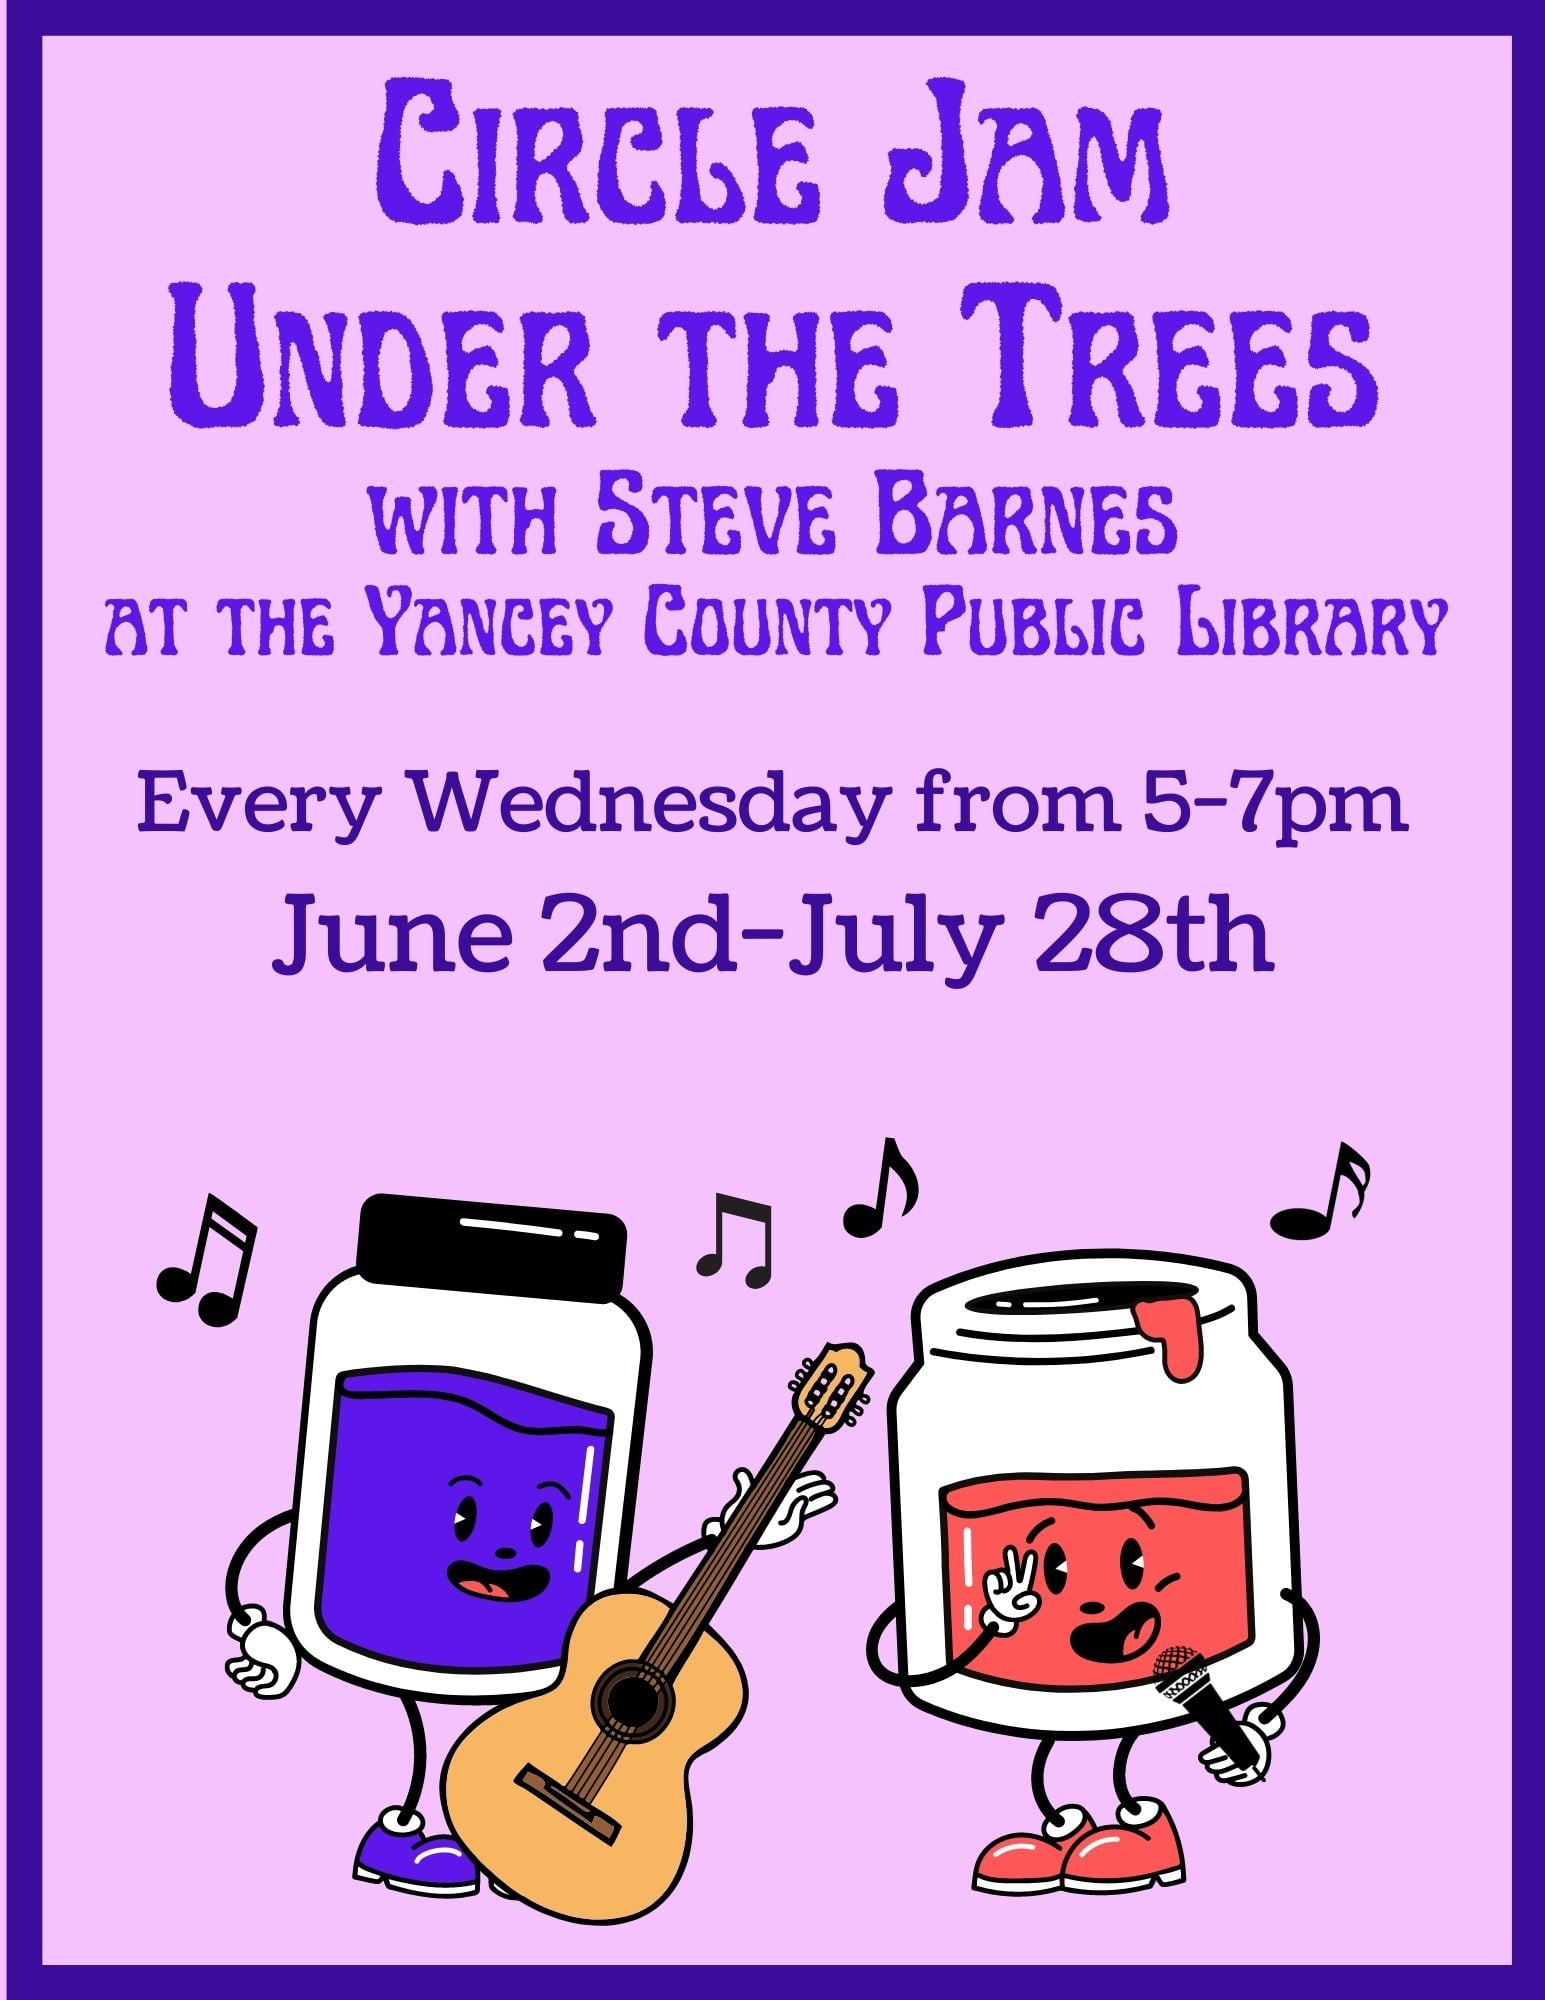 Circle Jam Under the Trees with images of jam jars, one purple and one red playing instruments